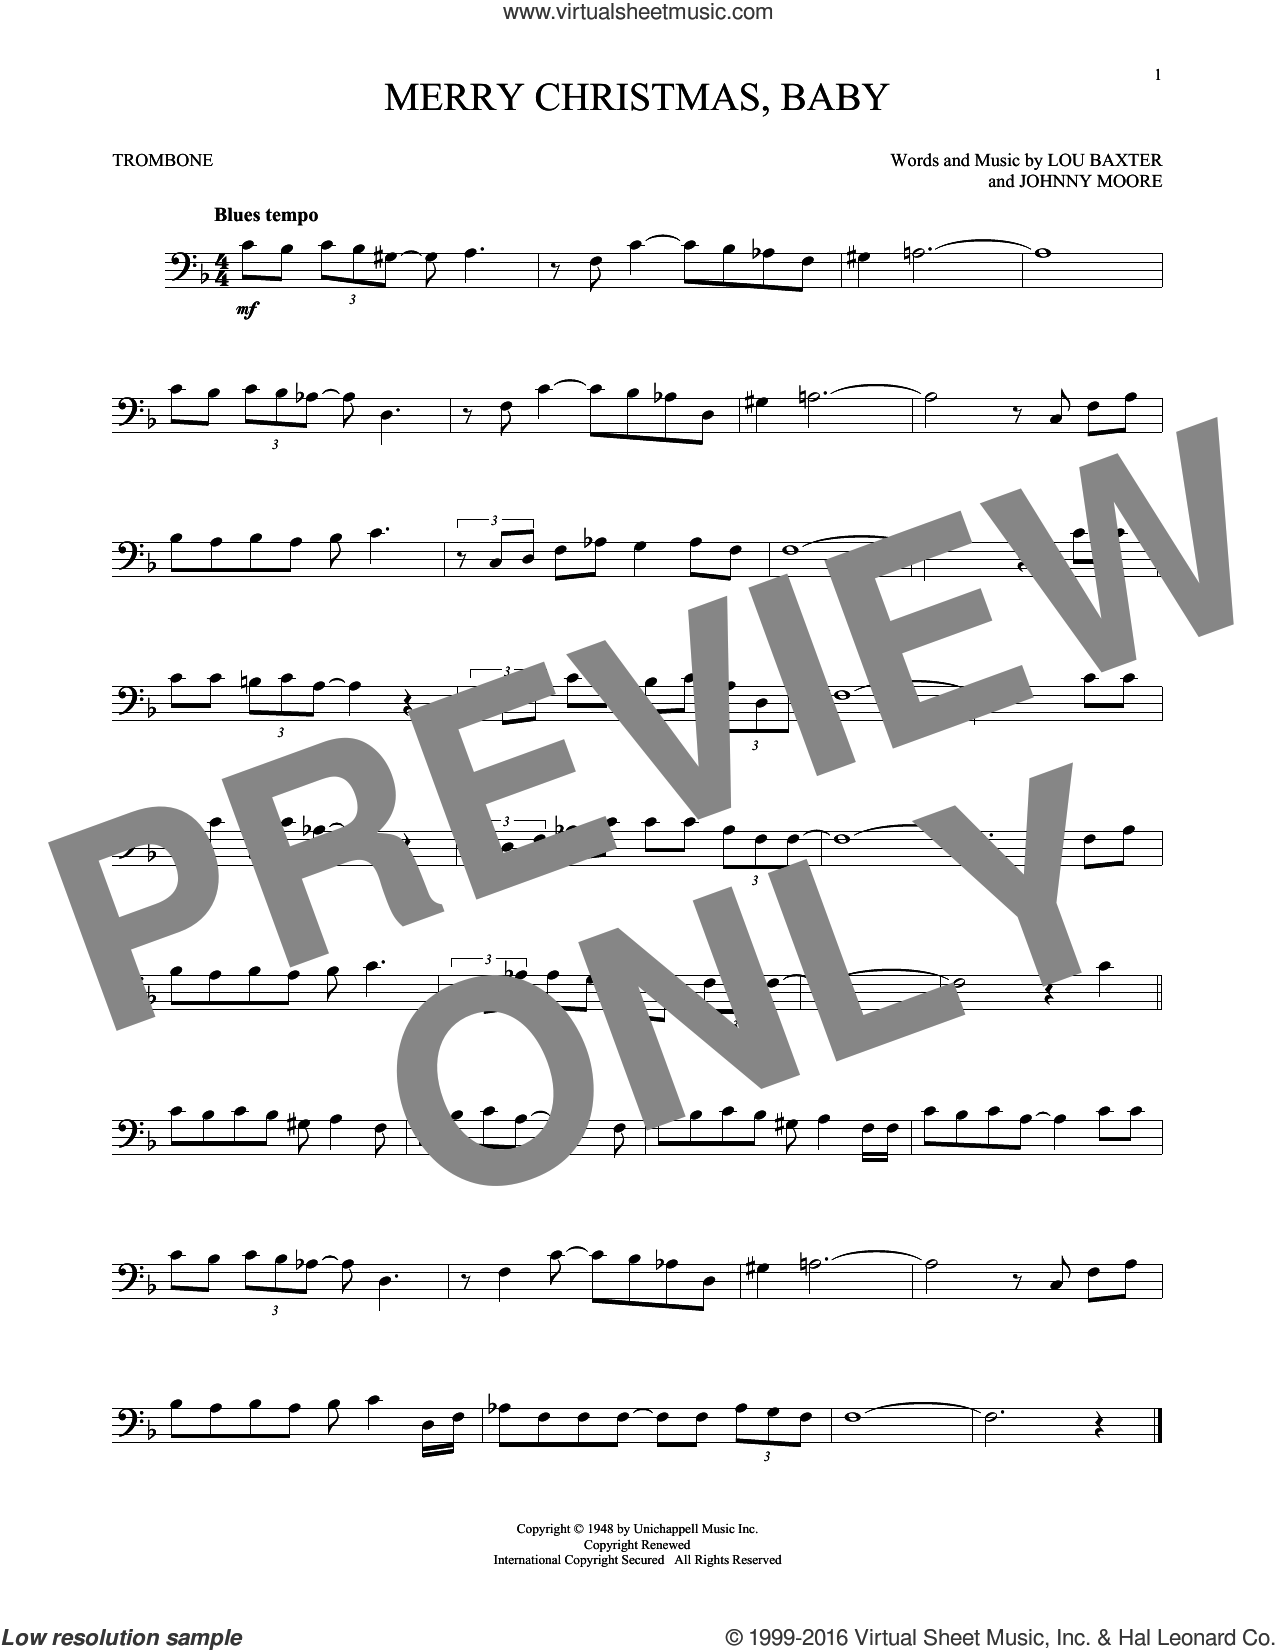 Merry Christmas, Baby sheet music for trombone solo by Lou Baxter, Elvis Presley and Johnny Moore. Score Image Preview.